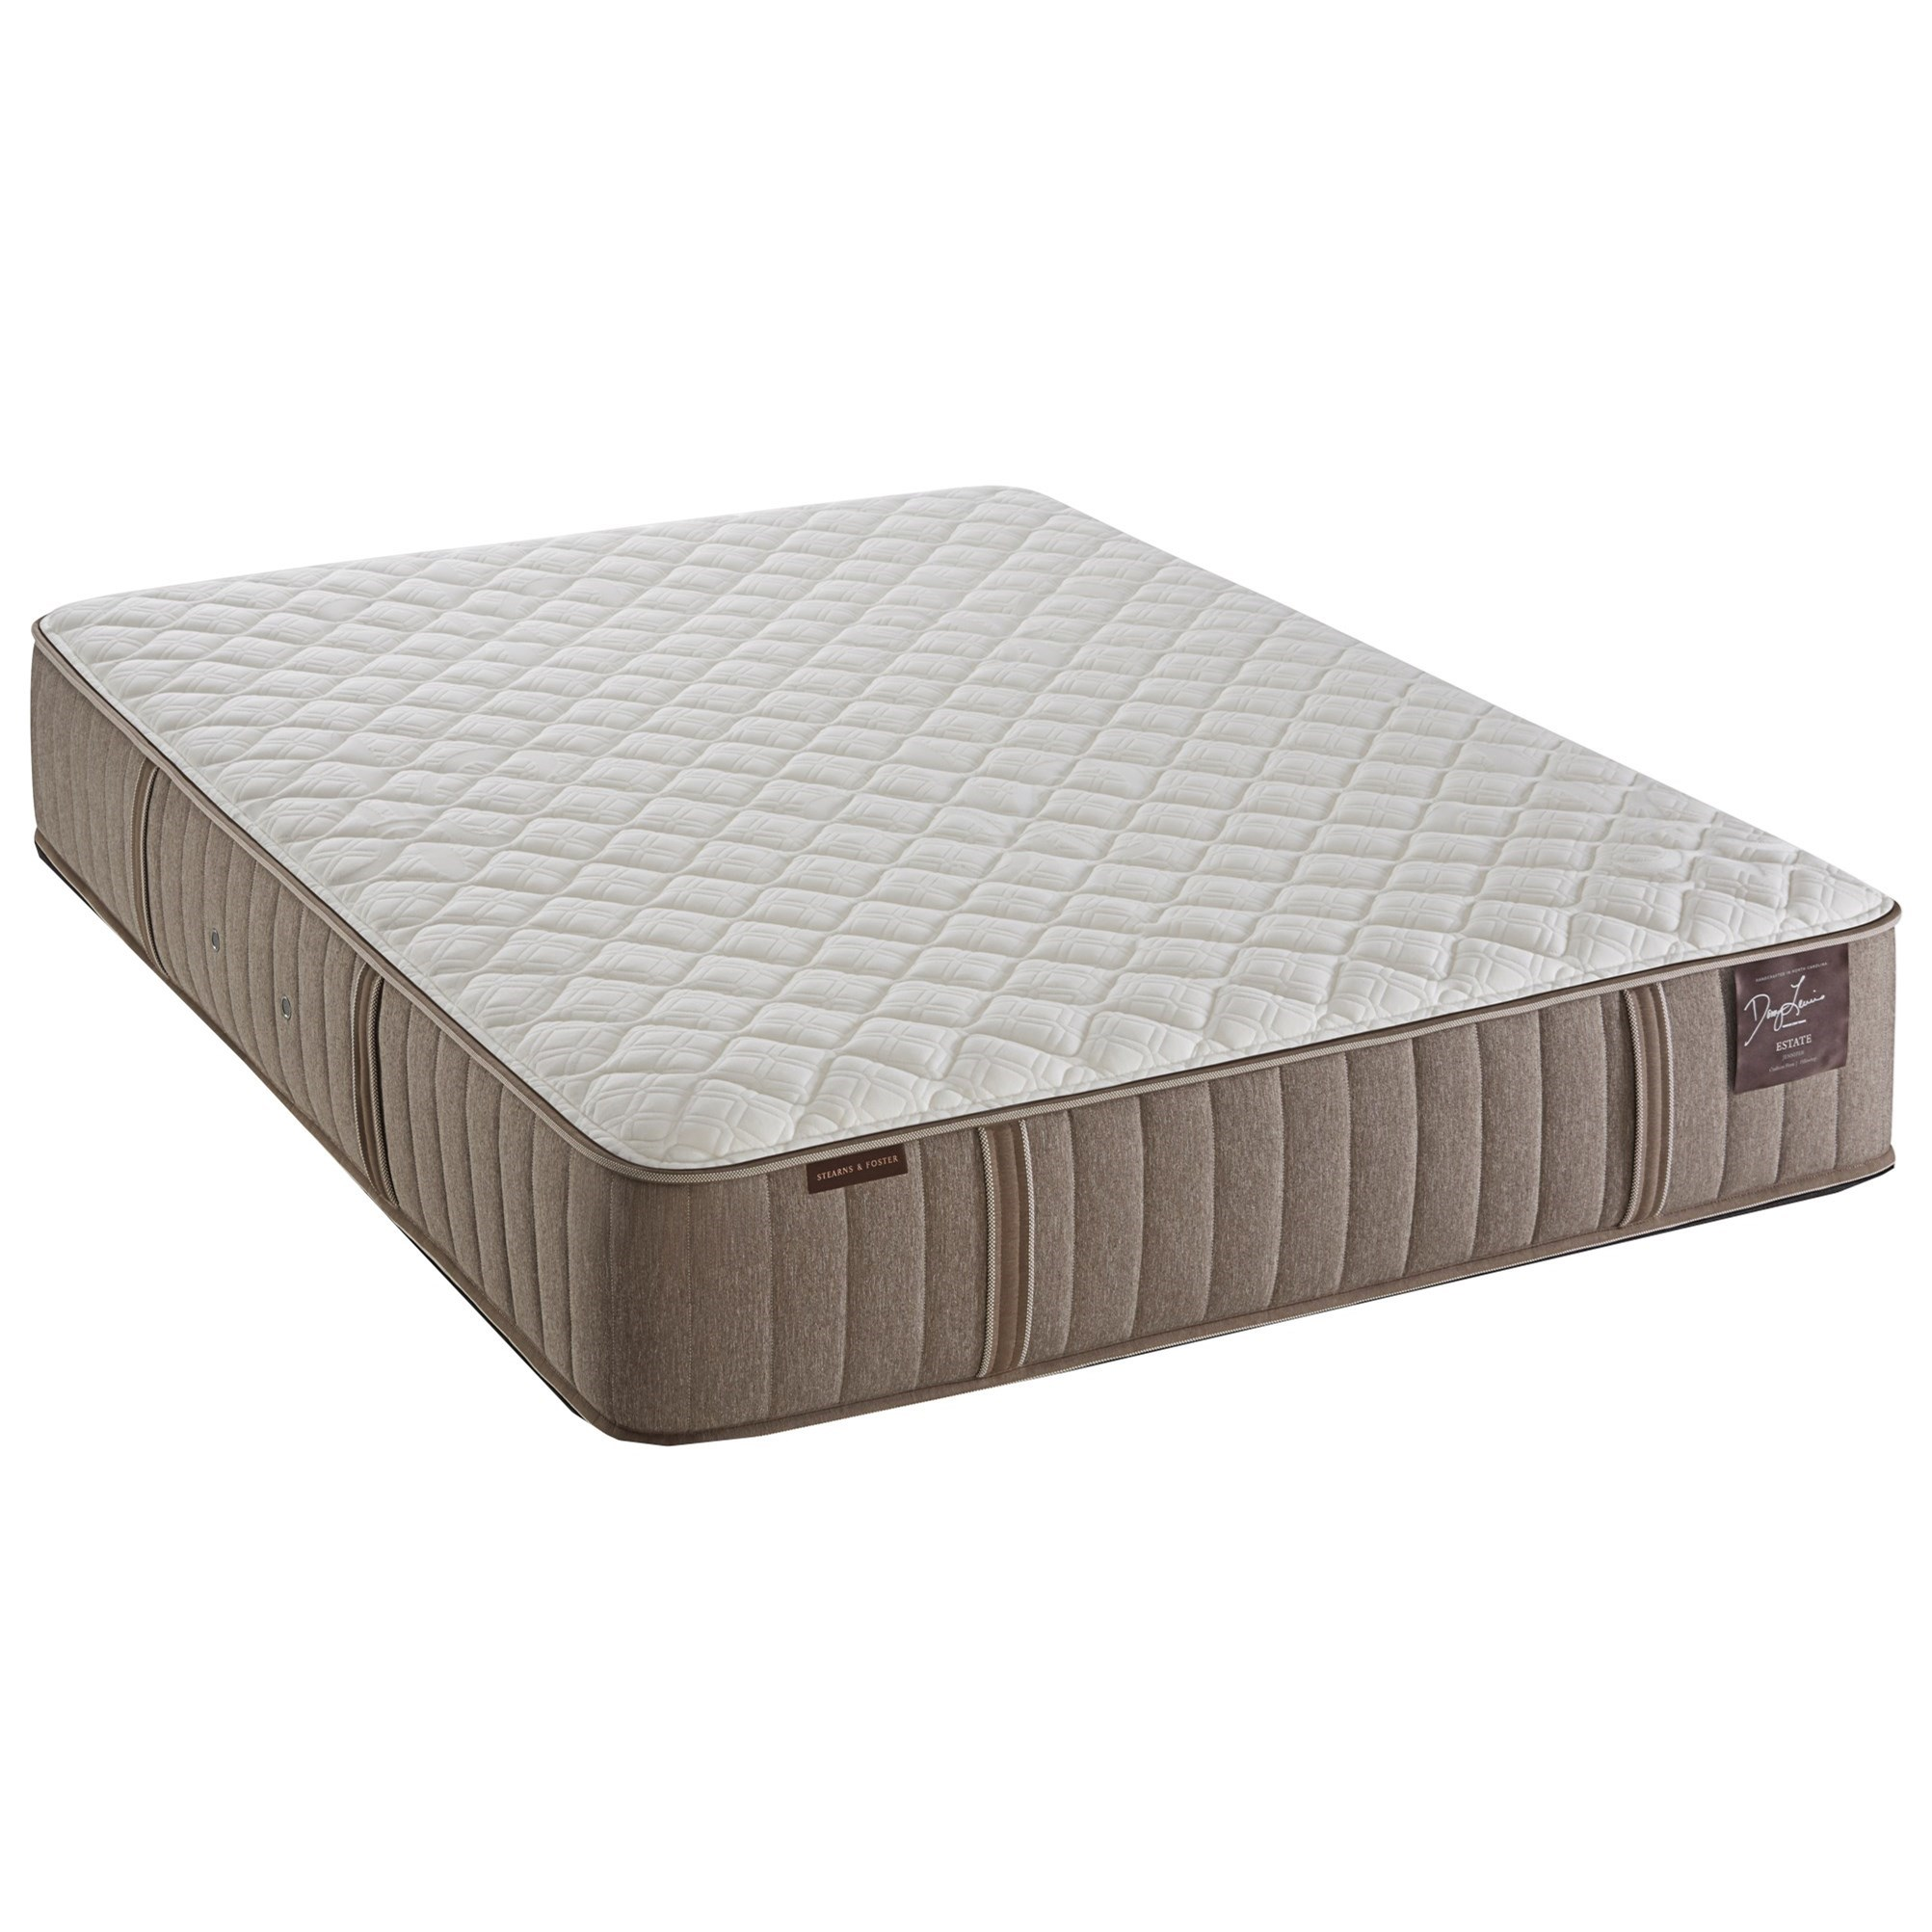 Stearns & Foster Scarborough King Ultra Firm Mattress - Item Number: UFirm-K